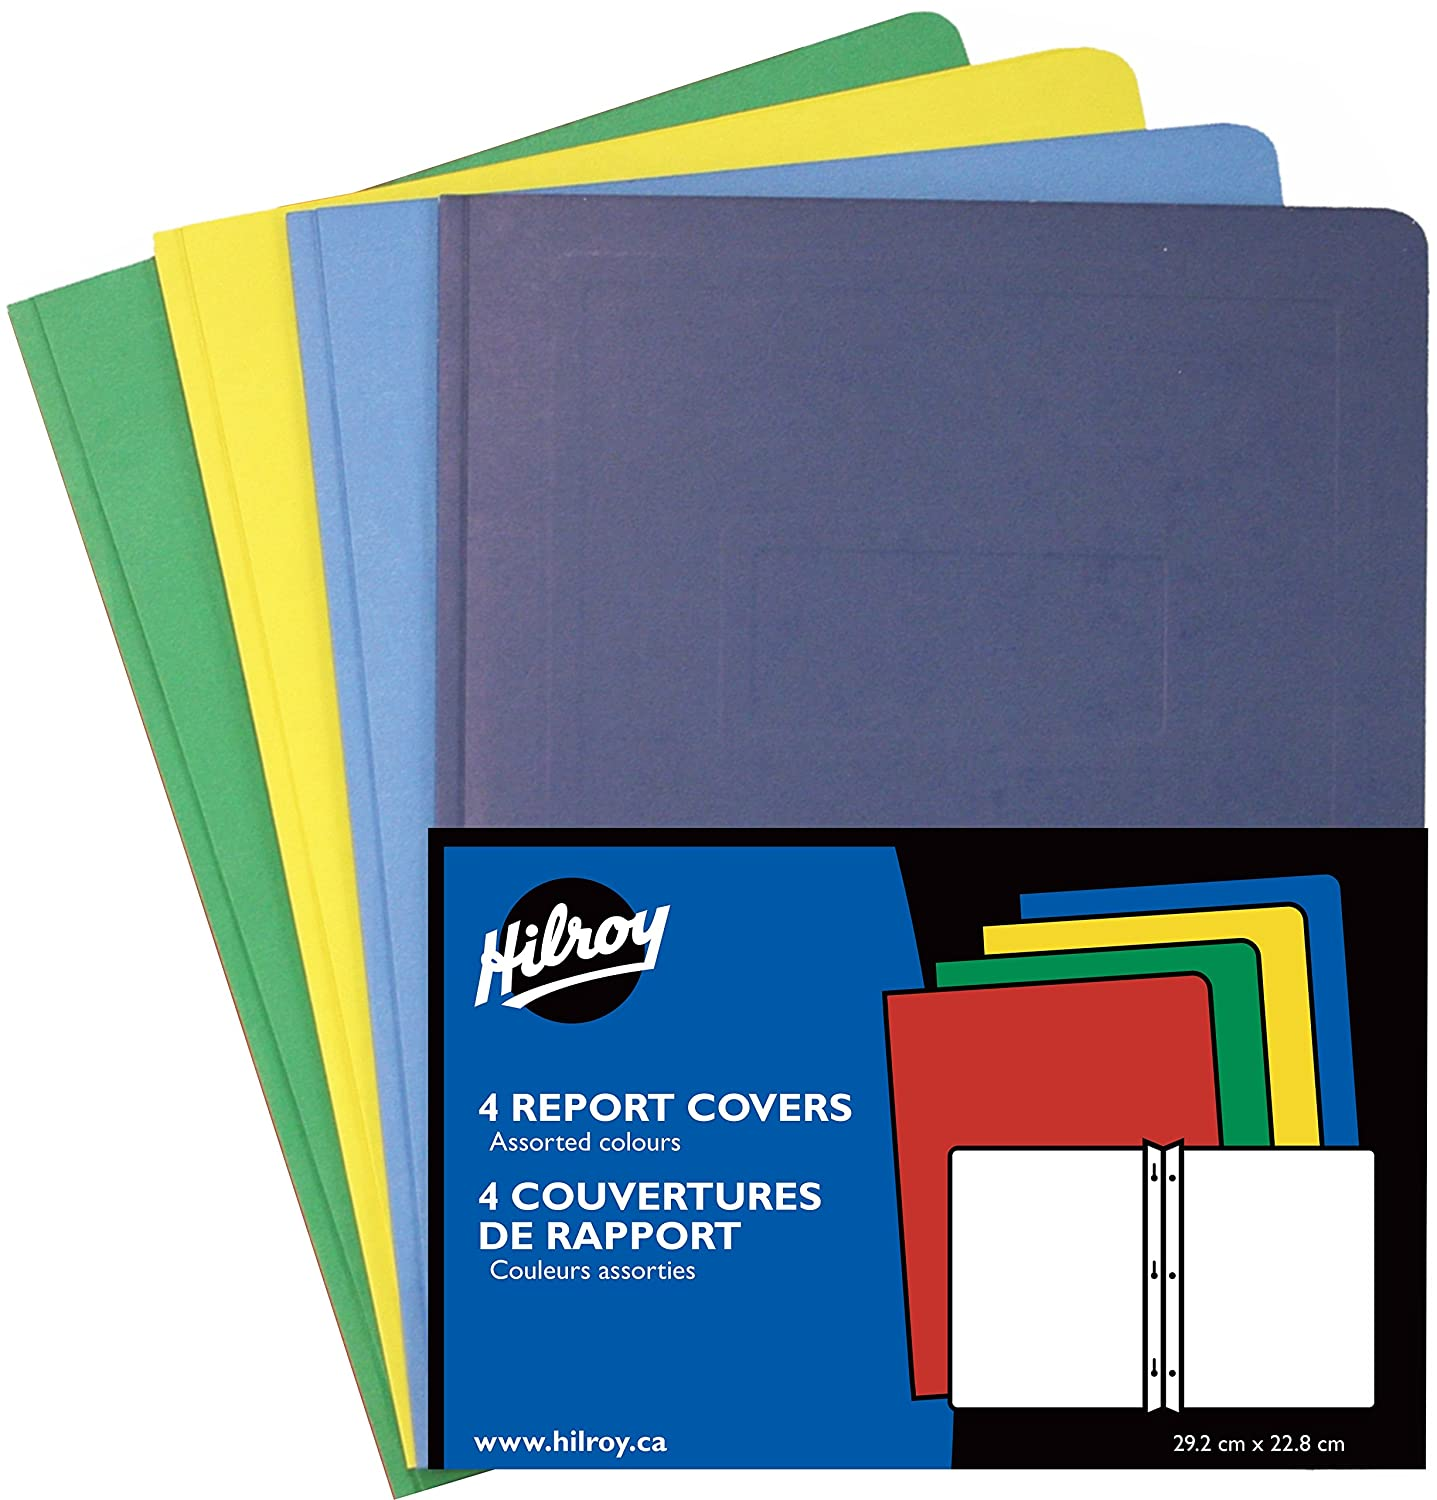 Hilroy Leatherine Report Covers, 11-1/2 X 9-1/8-Inch, 4 Per Pack, 50 Packs, Assorted Colors -6242 06242